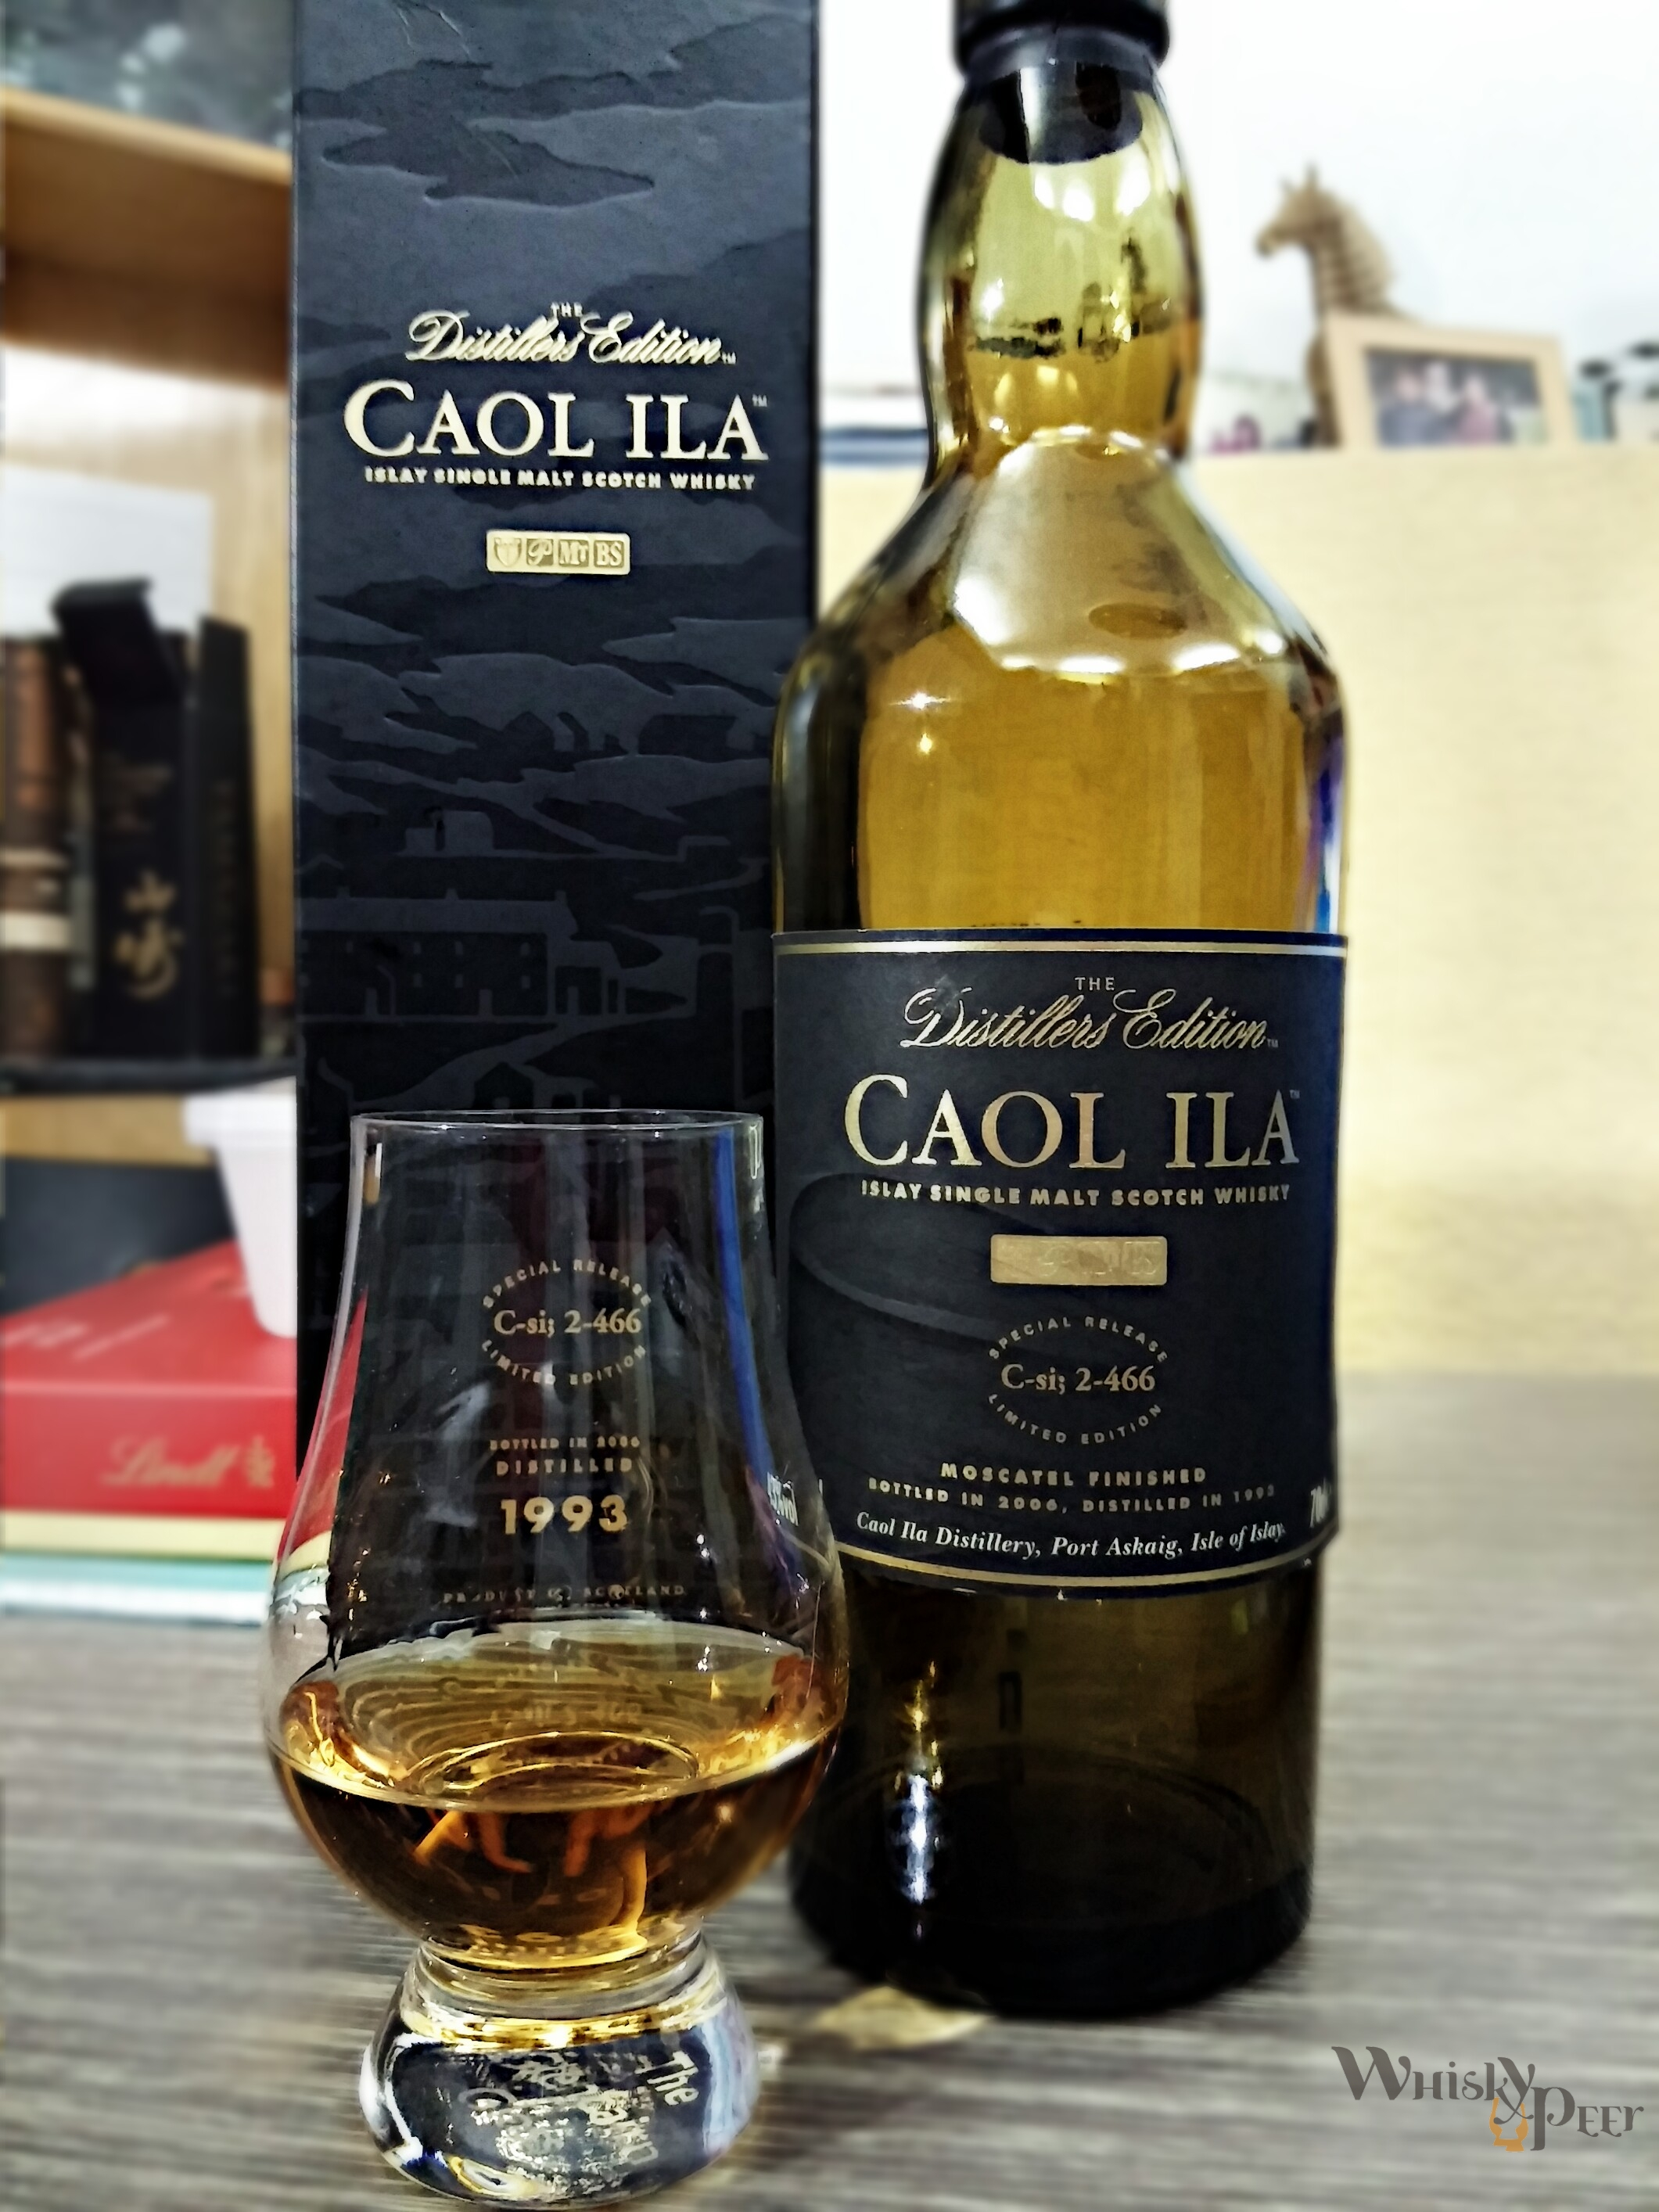 Caol ila 1993 Distillery Edition